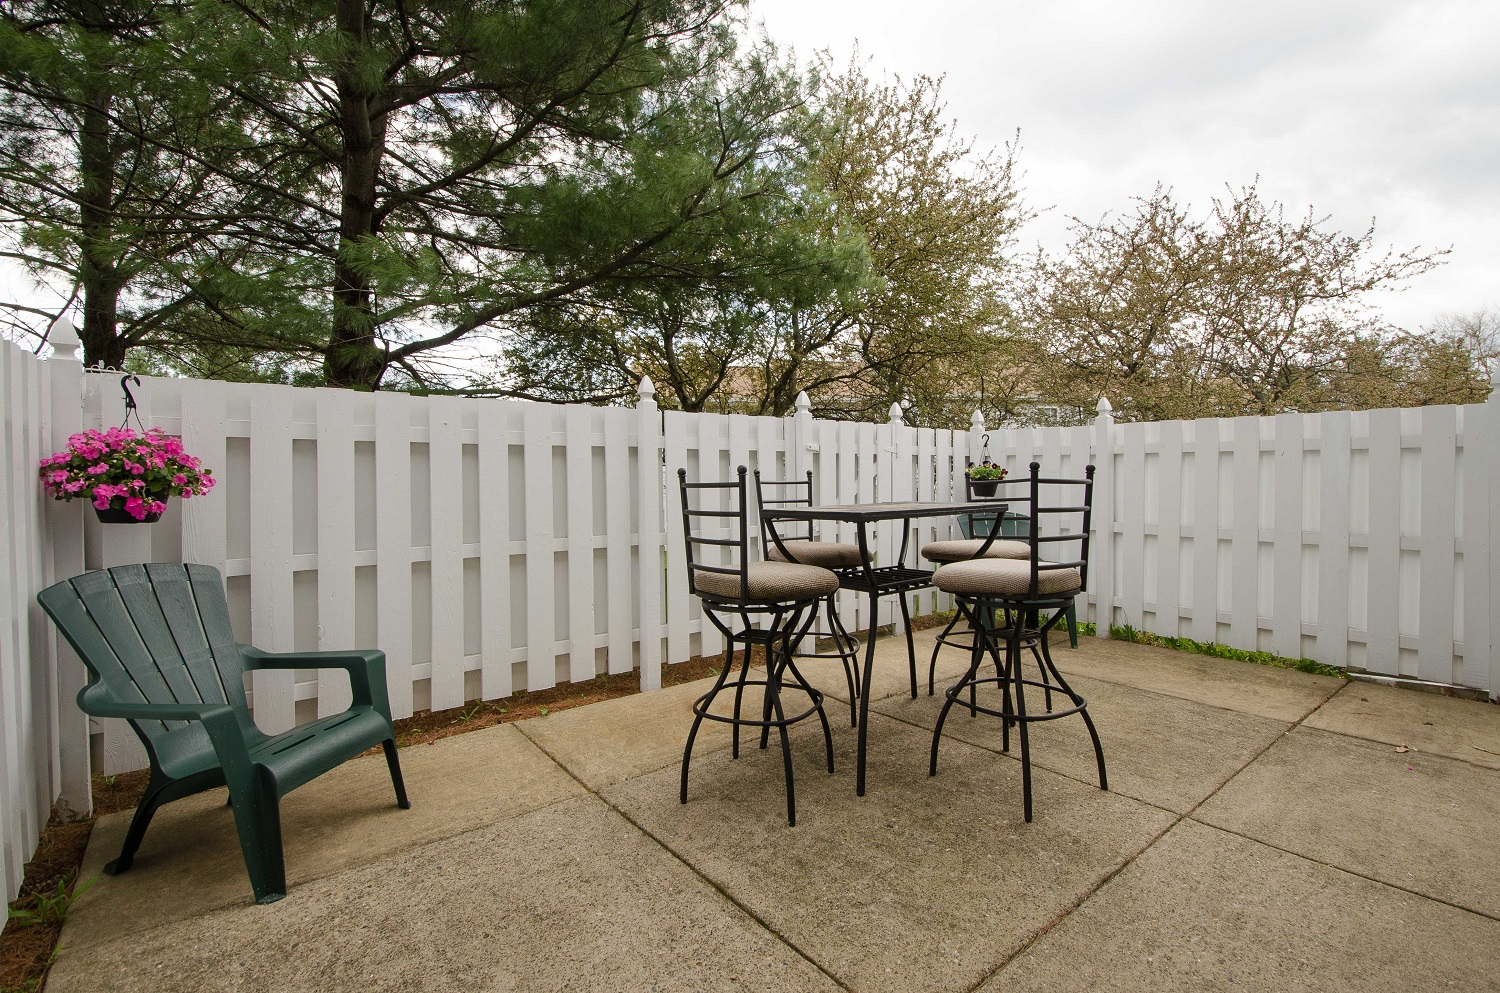 556 Cedar Hollow Dr., Yardley, PA 19067 Patio